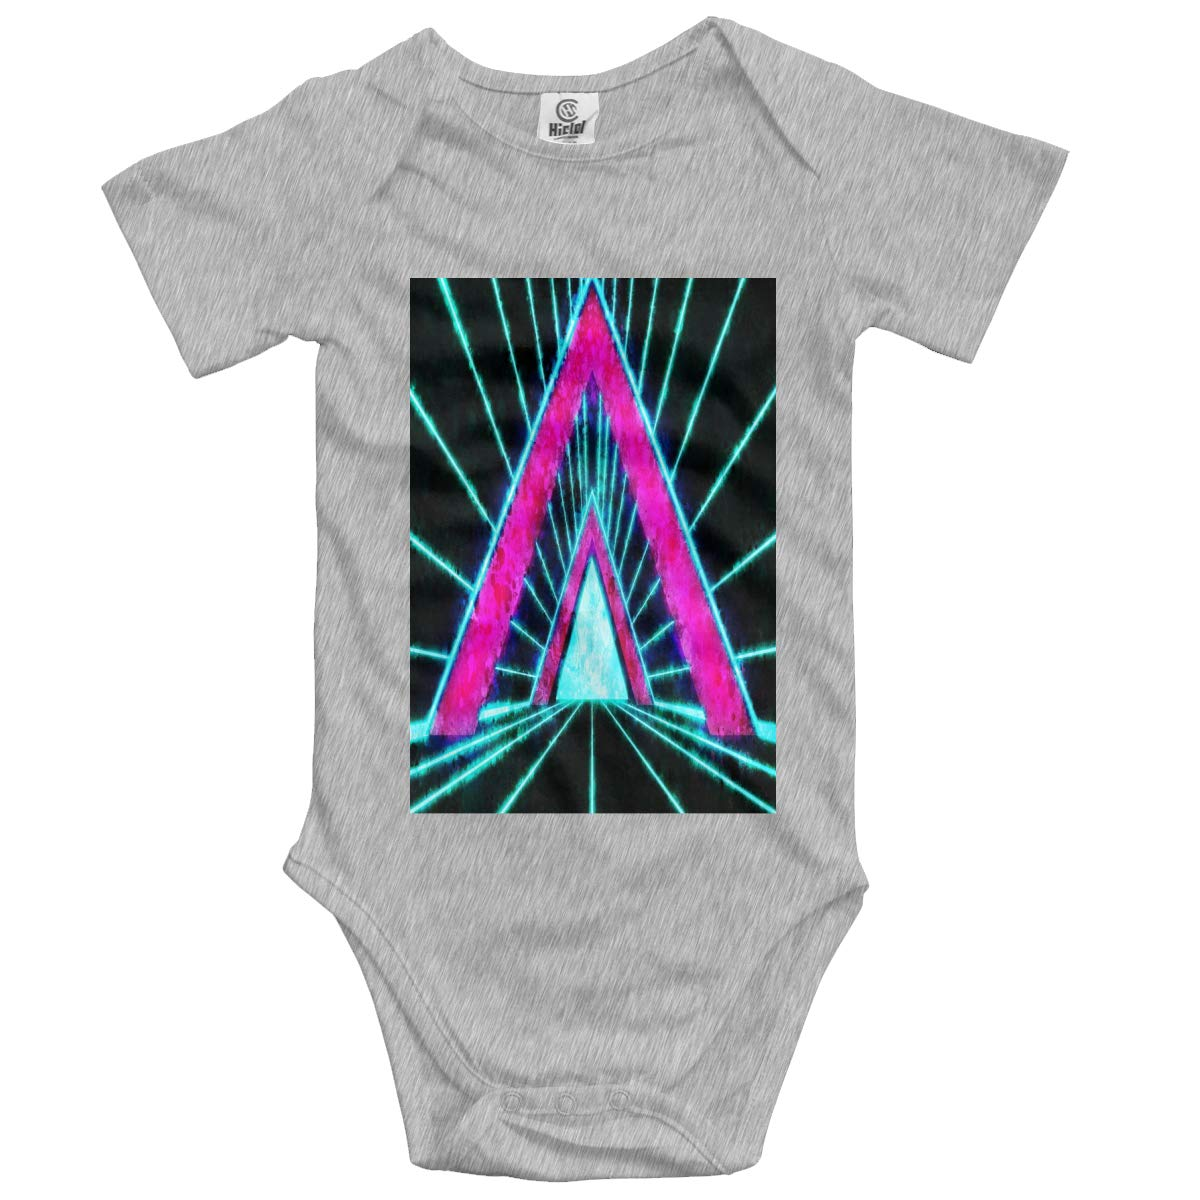 Trend Red Triangle Time and Space Tunnel Boys /& Girls Black Short Sleeve Romper Triangle Romper for 0-24 Months